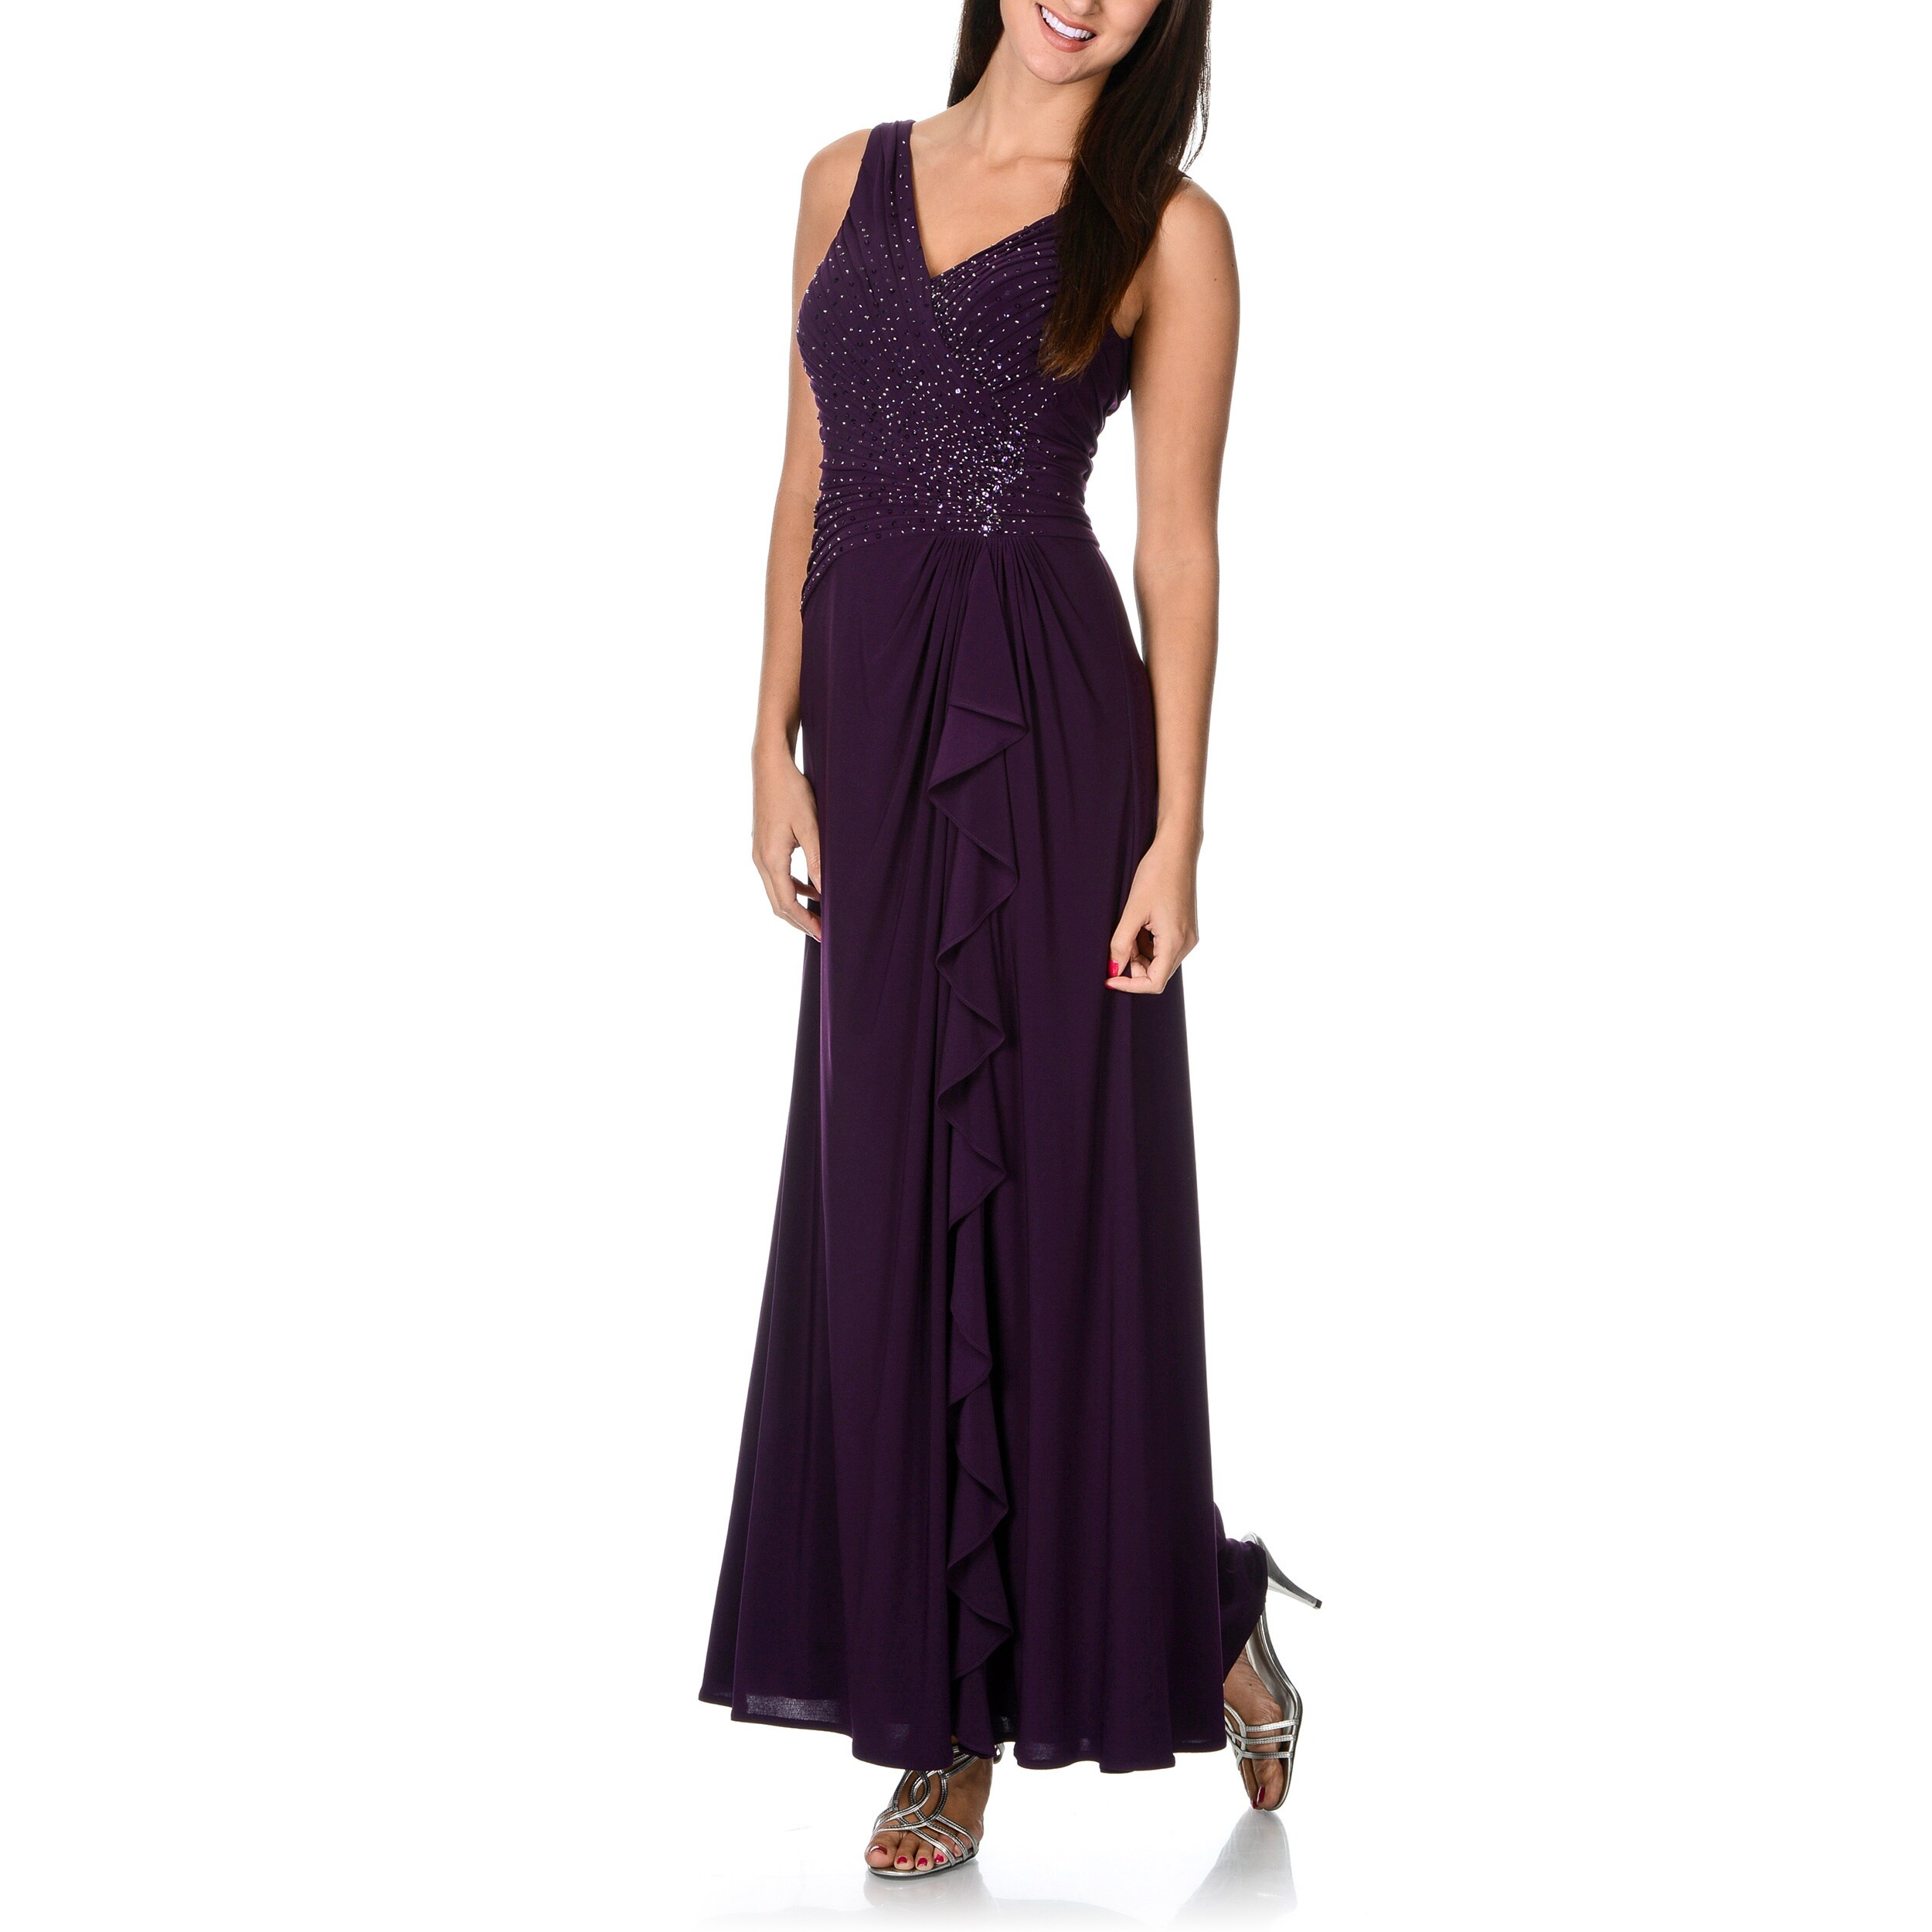 Ignite Women's Raisin Purple Beaded Evening Dress